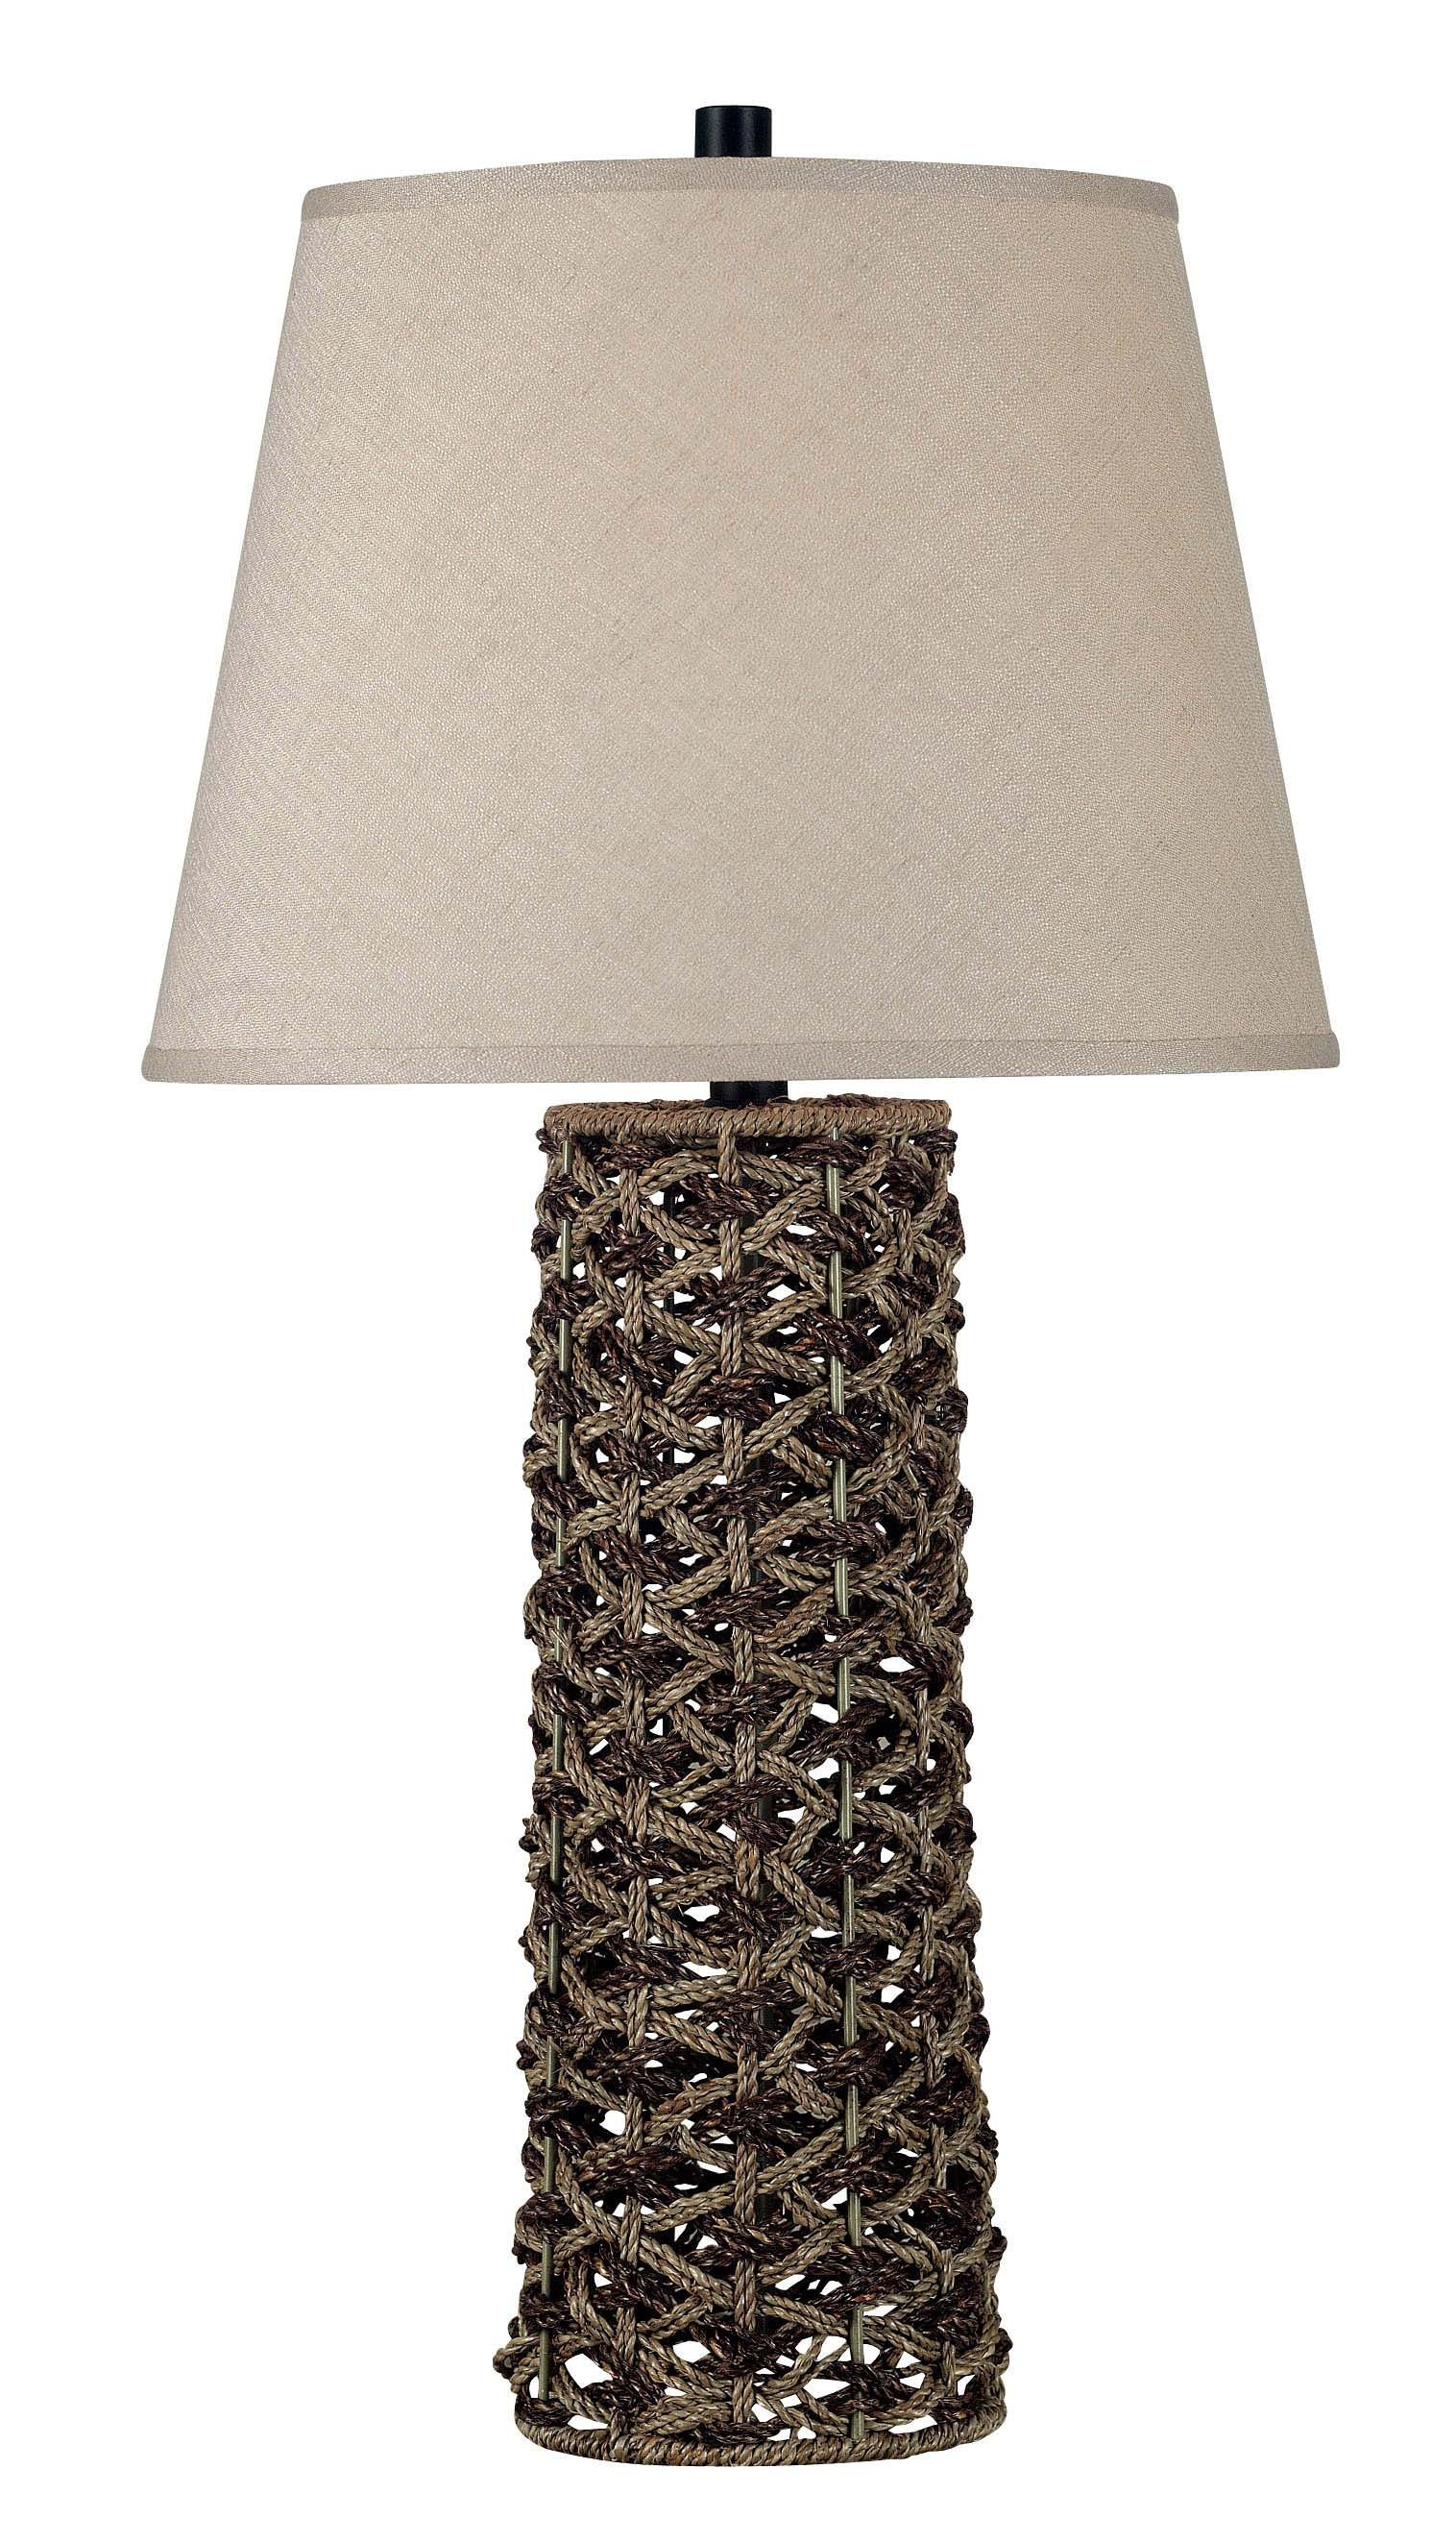 Jakarta Table Lamp From Kenroy 20974